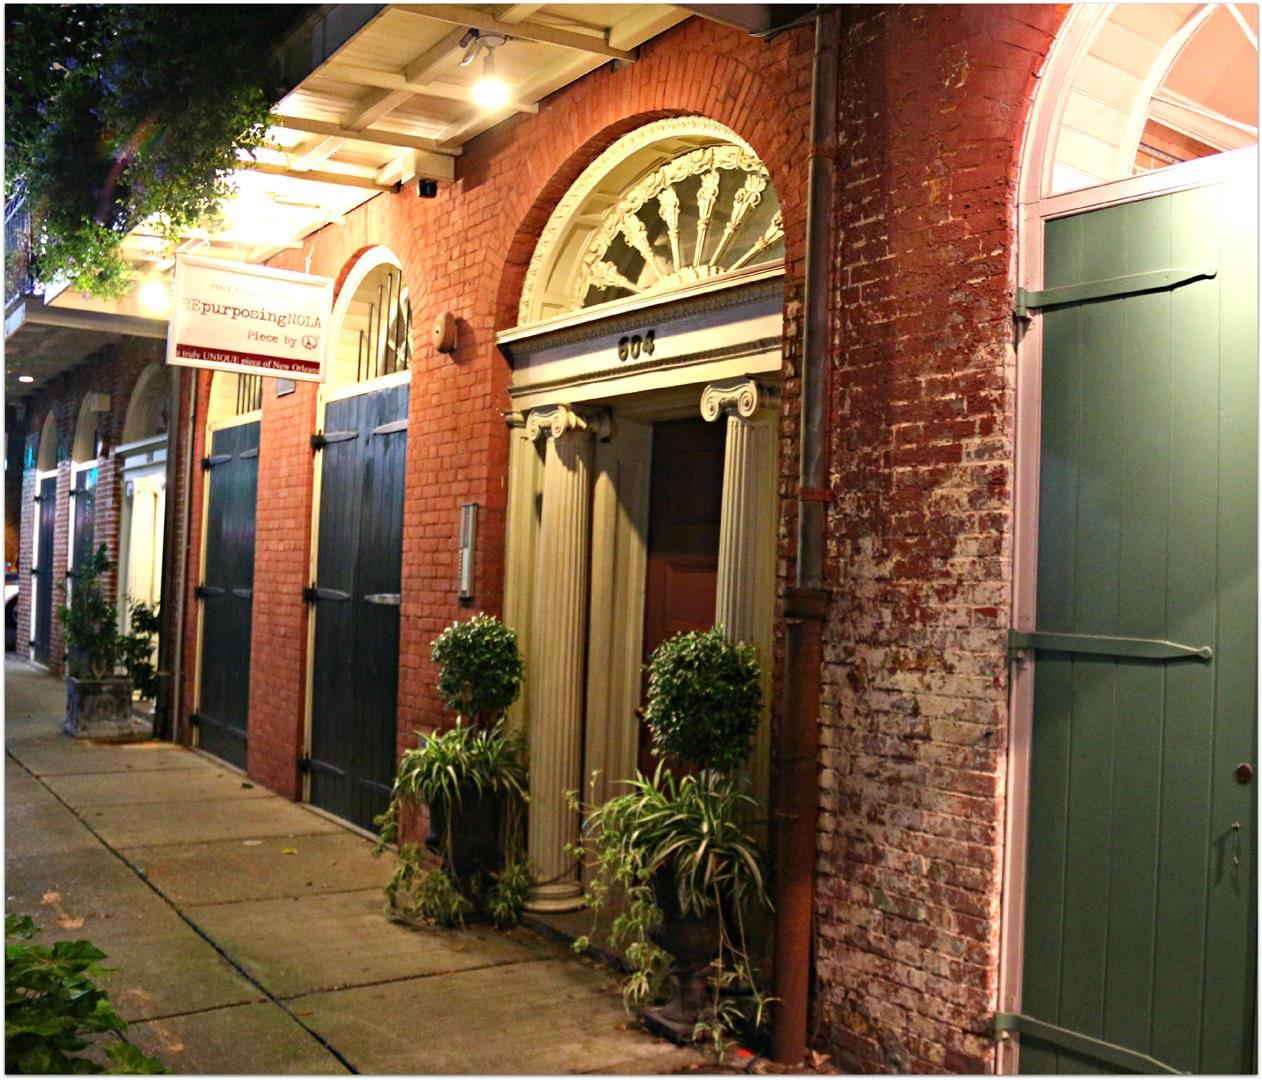 JuliaStreetDoor,NewOrleansWarehouseDistrict.jpg